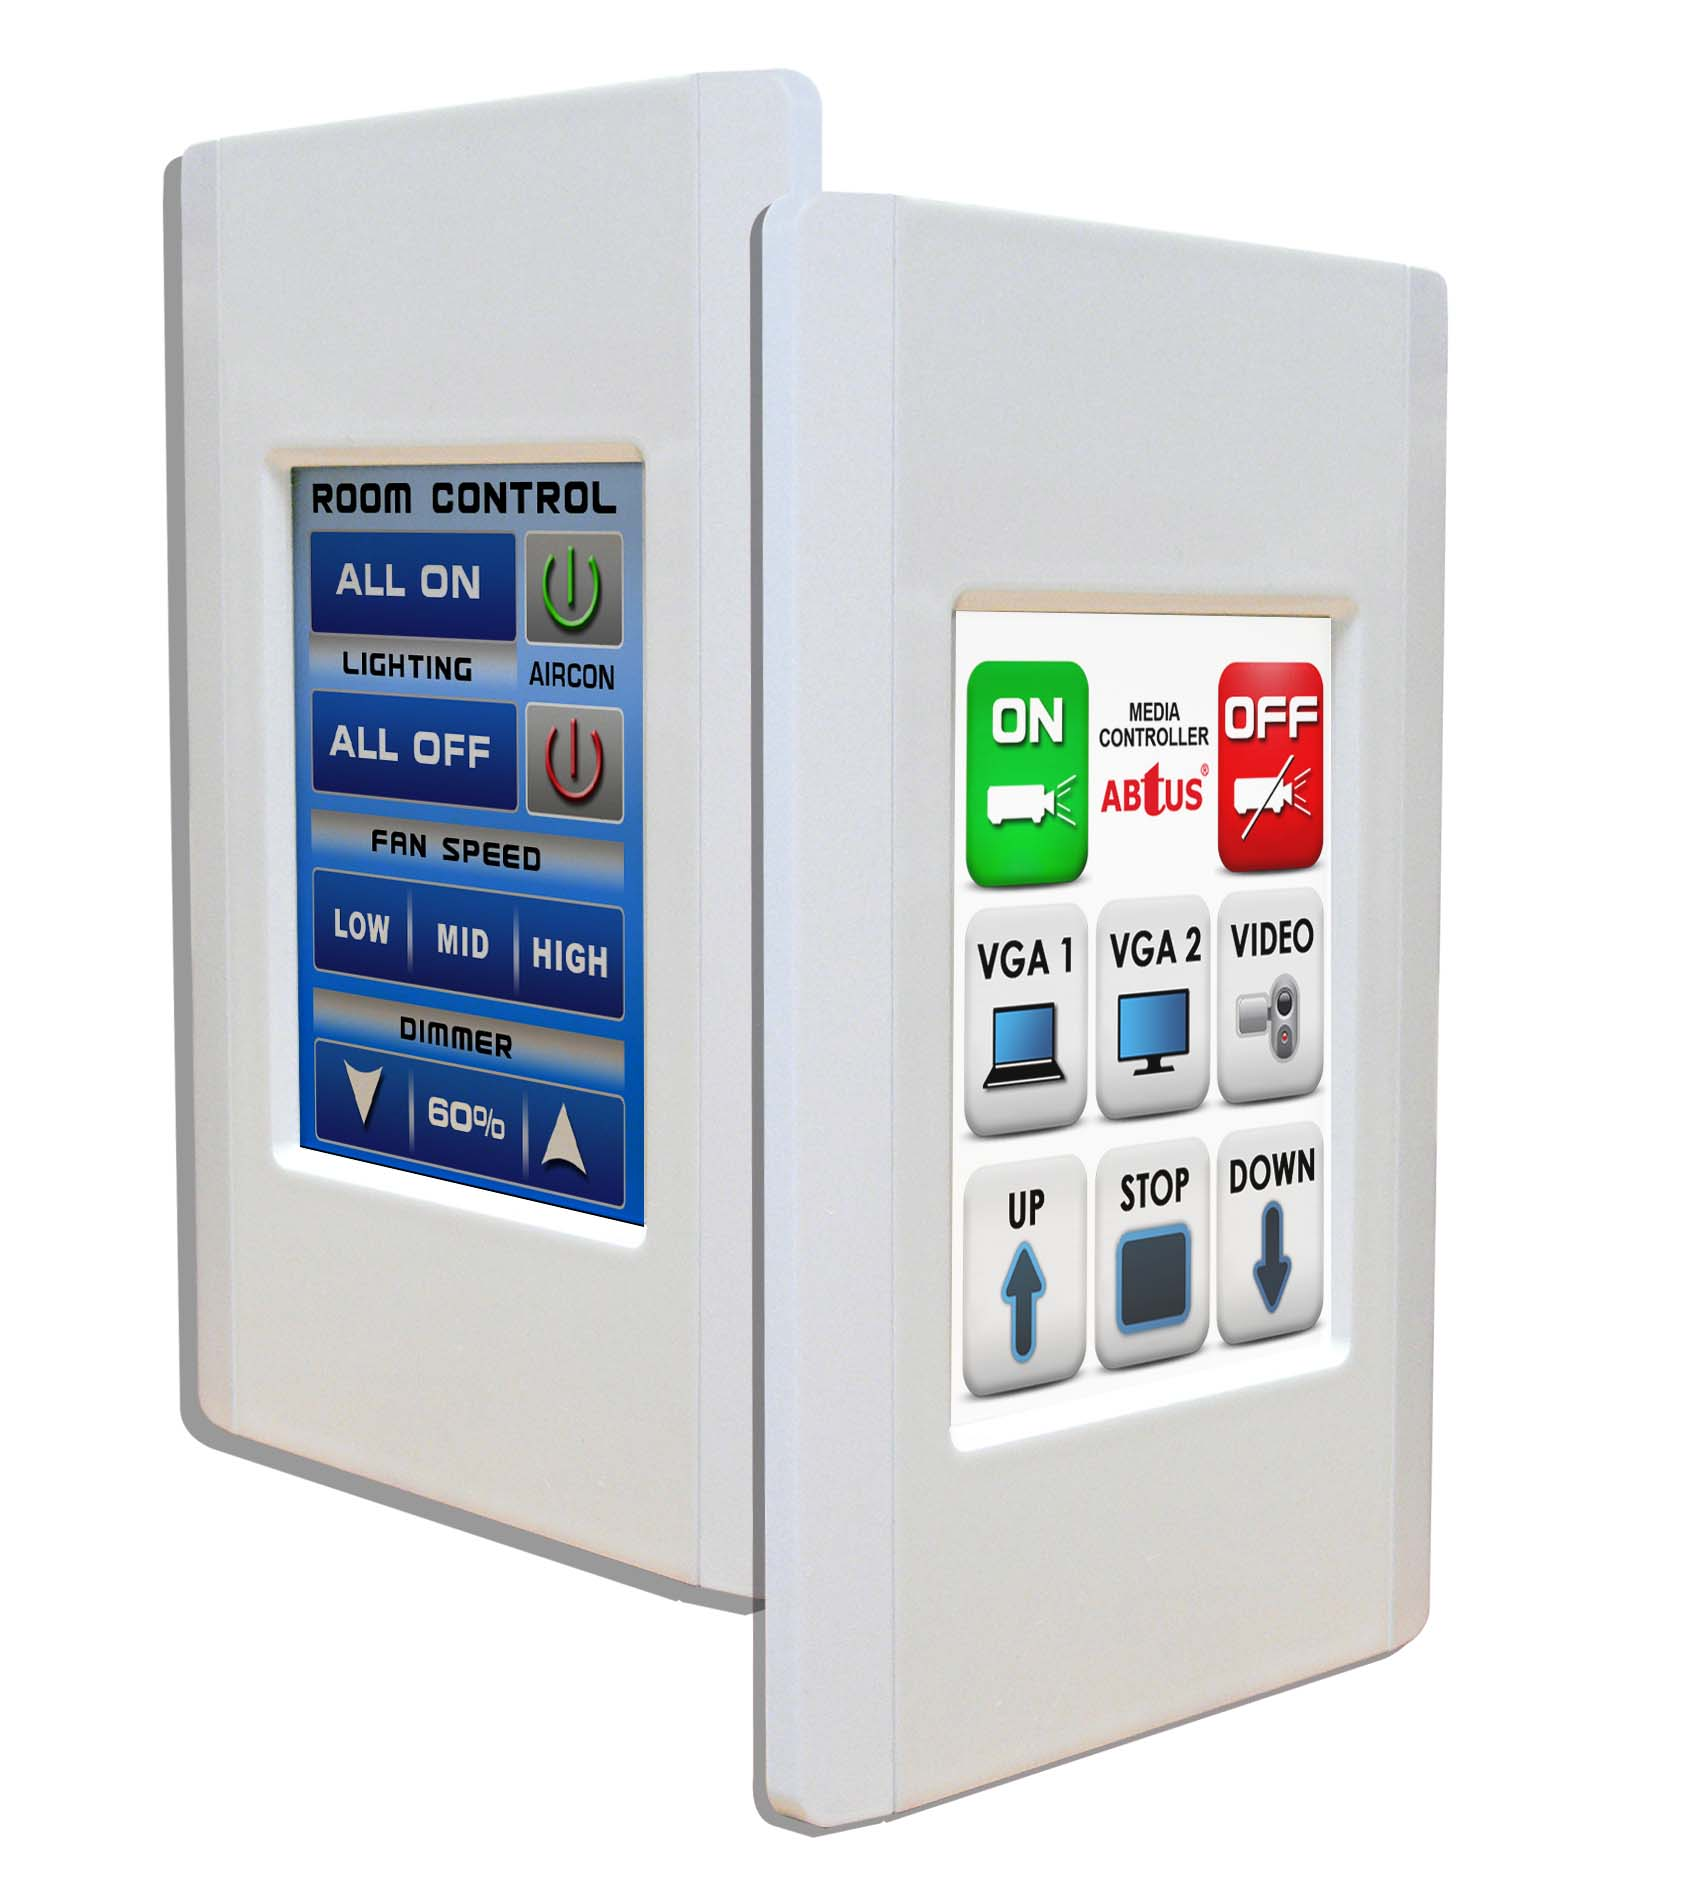 In Room Control Panel User Programmable Touch Control